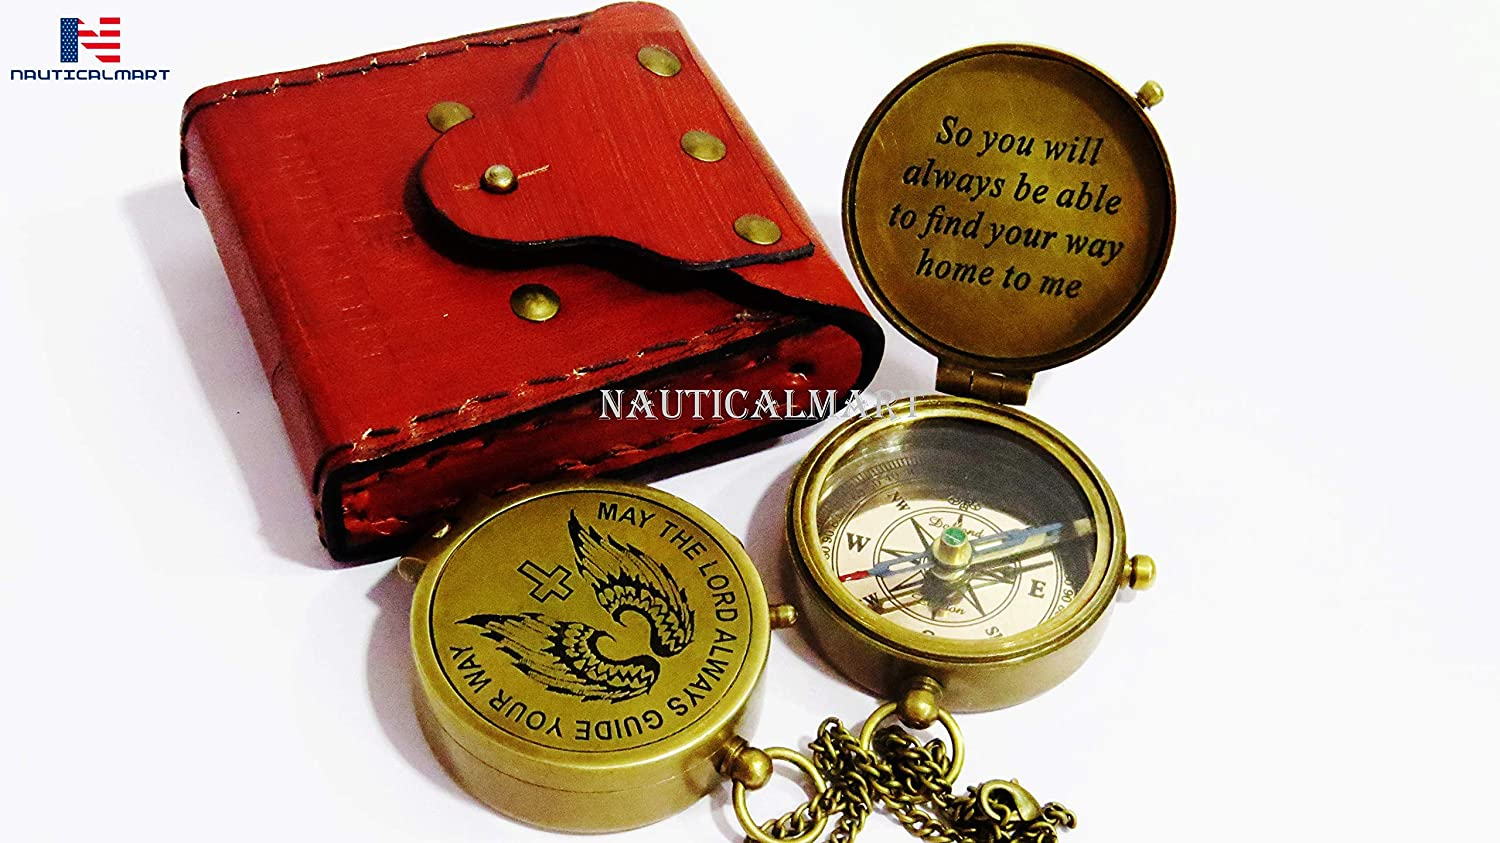 Missionary Birthday or Confirmation Gift Heavenly Gift of Faith The Perfect Baptism Gift NauticalMart Brass Compass God is My Guide Compass with Unique Leather Case